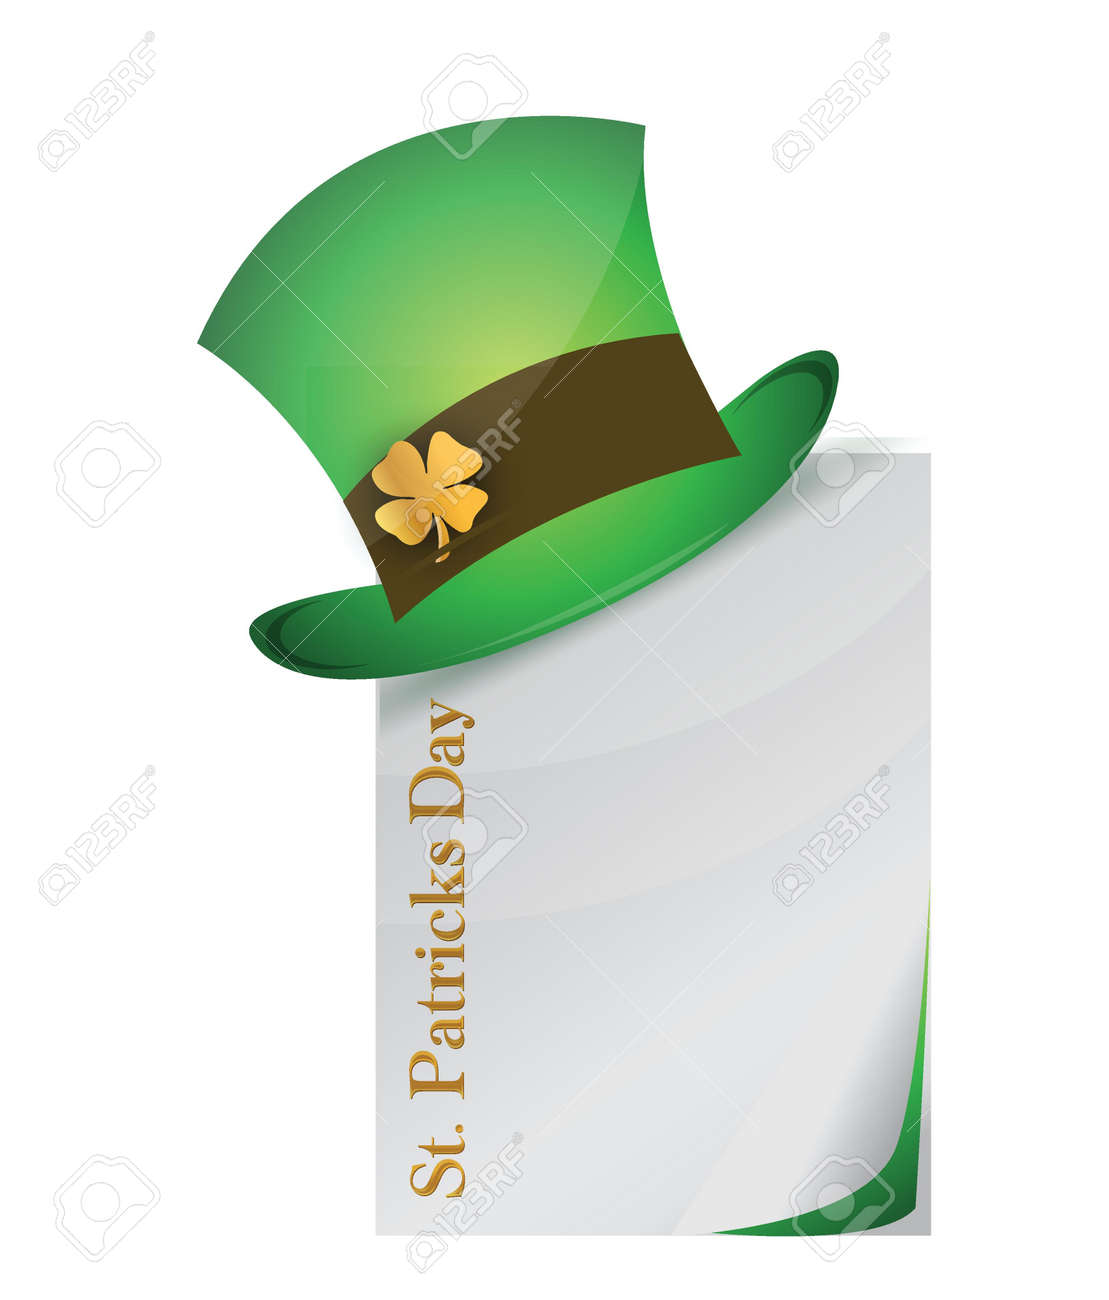 page and St. Patrick's Day hat with clover illustration design Stock Vector - 17695267